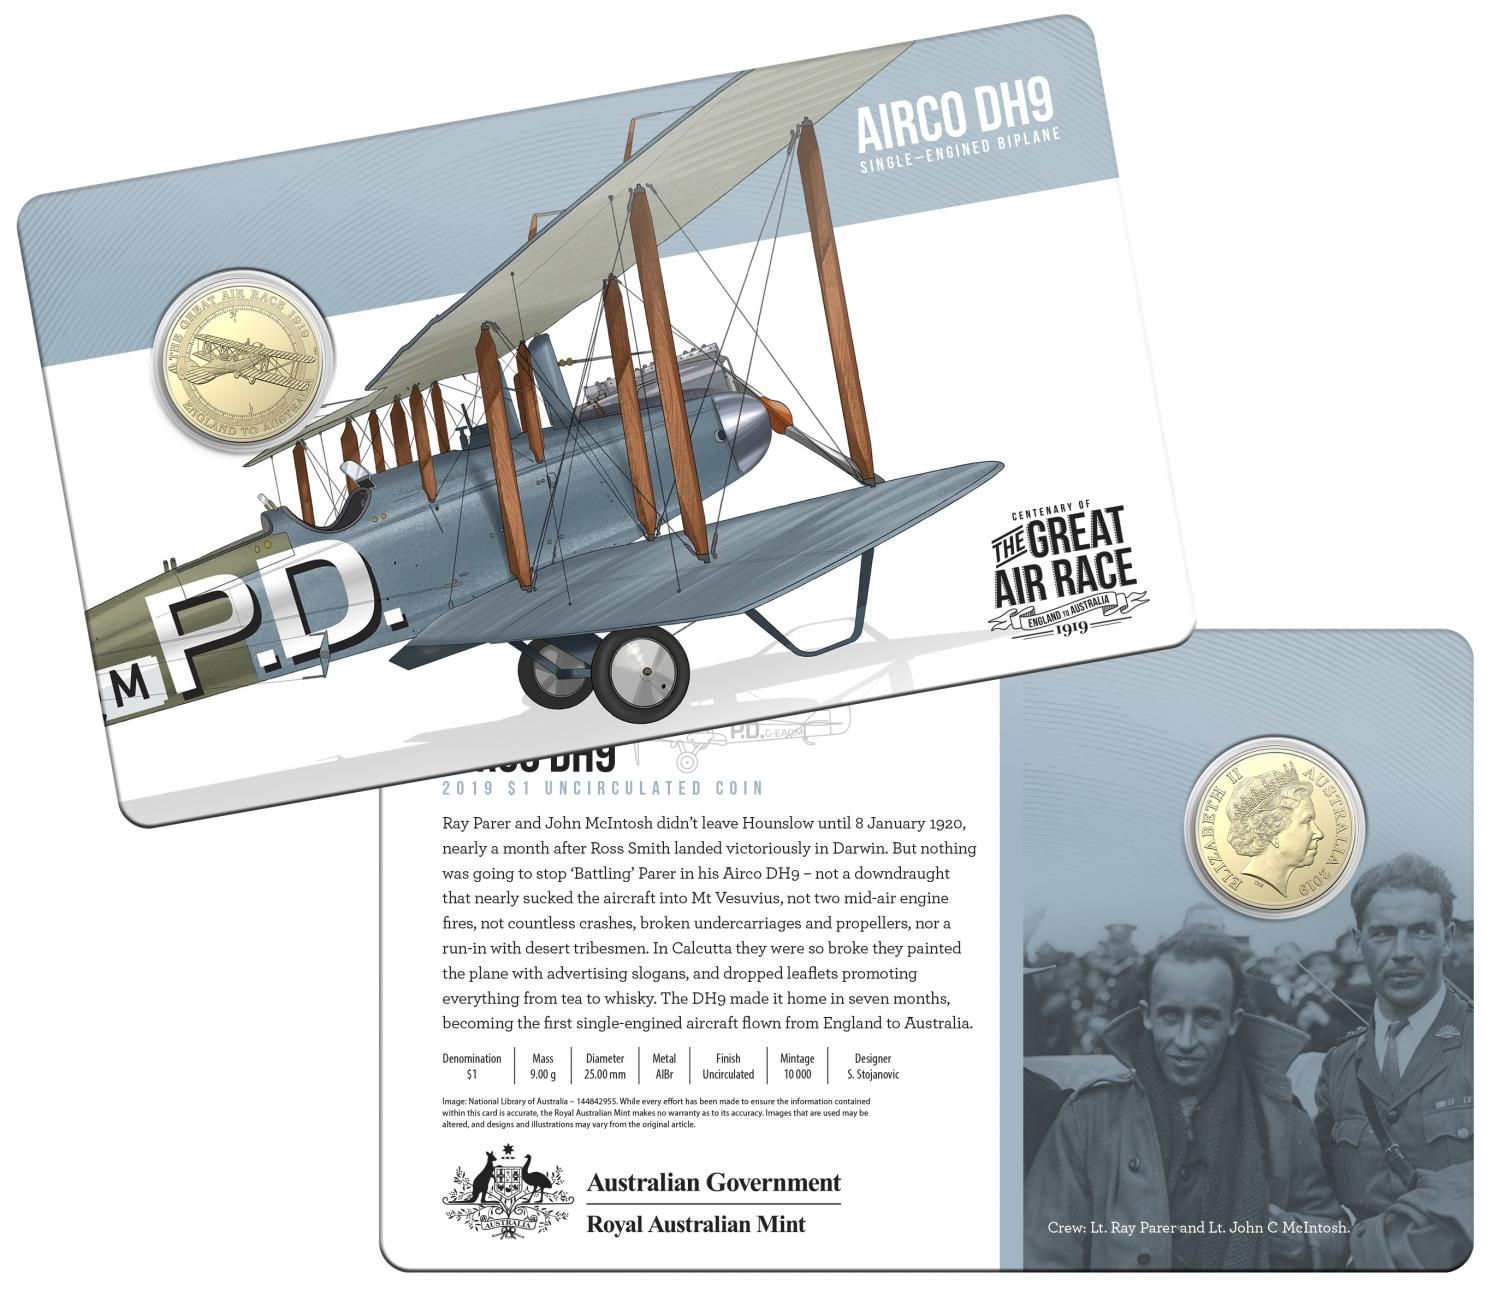 Thumbnail for 2019 Centenary off the Great Air Race Uncirculated $1.00 - Airco DH9